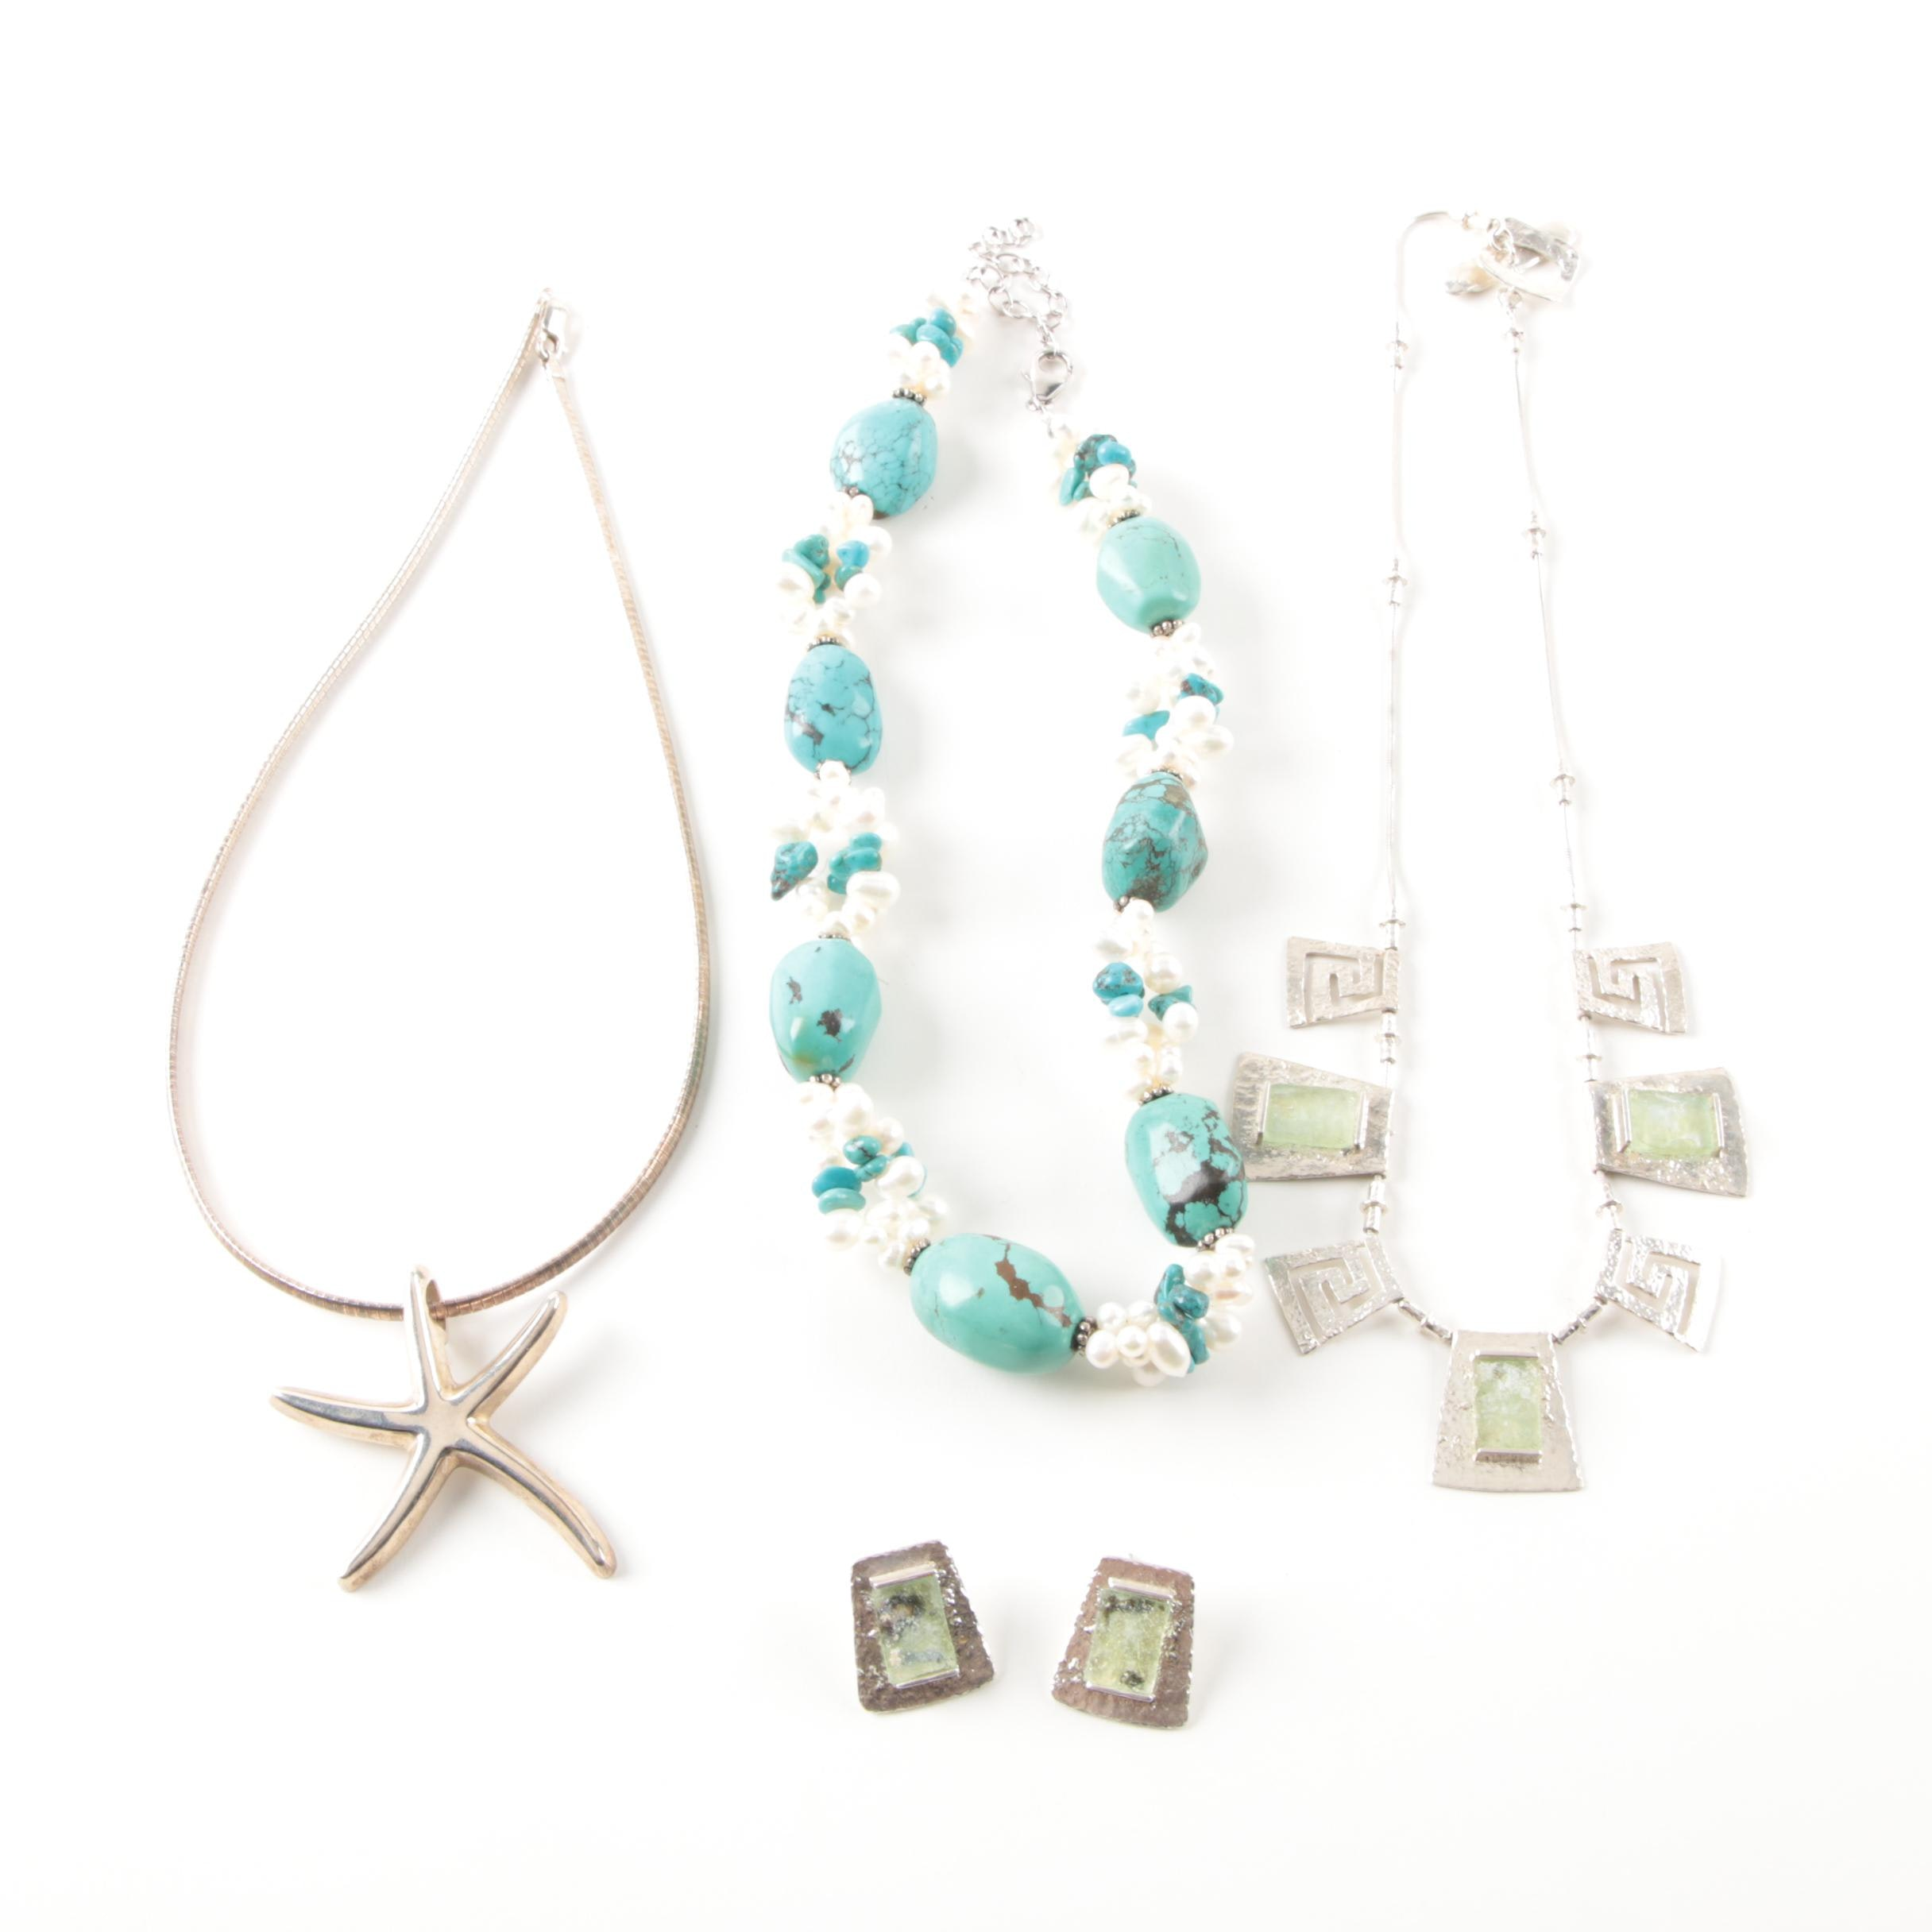 Sterling Silver Necklaces and Earrings Including Turquoise and Cultured Pearl